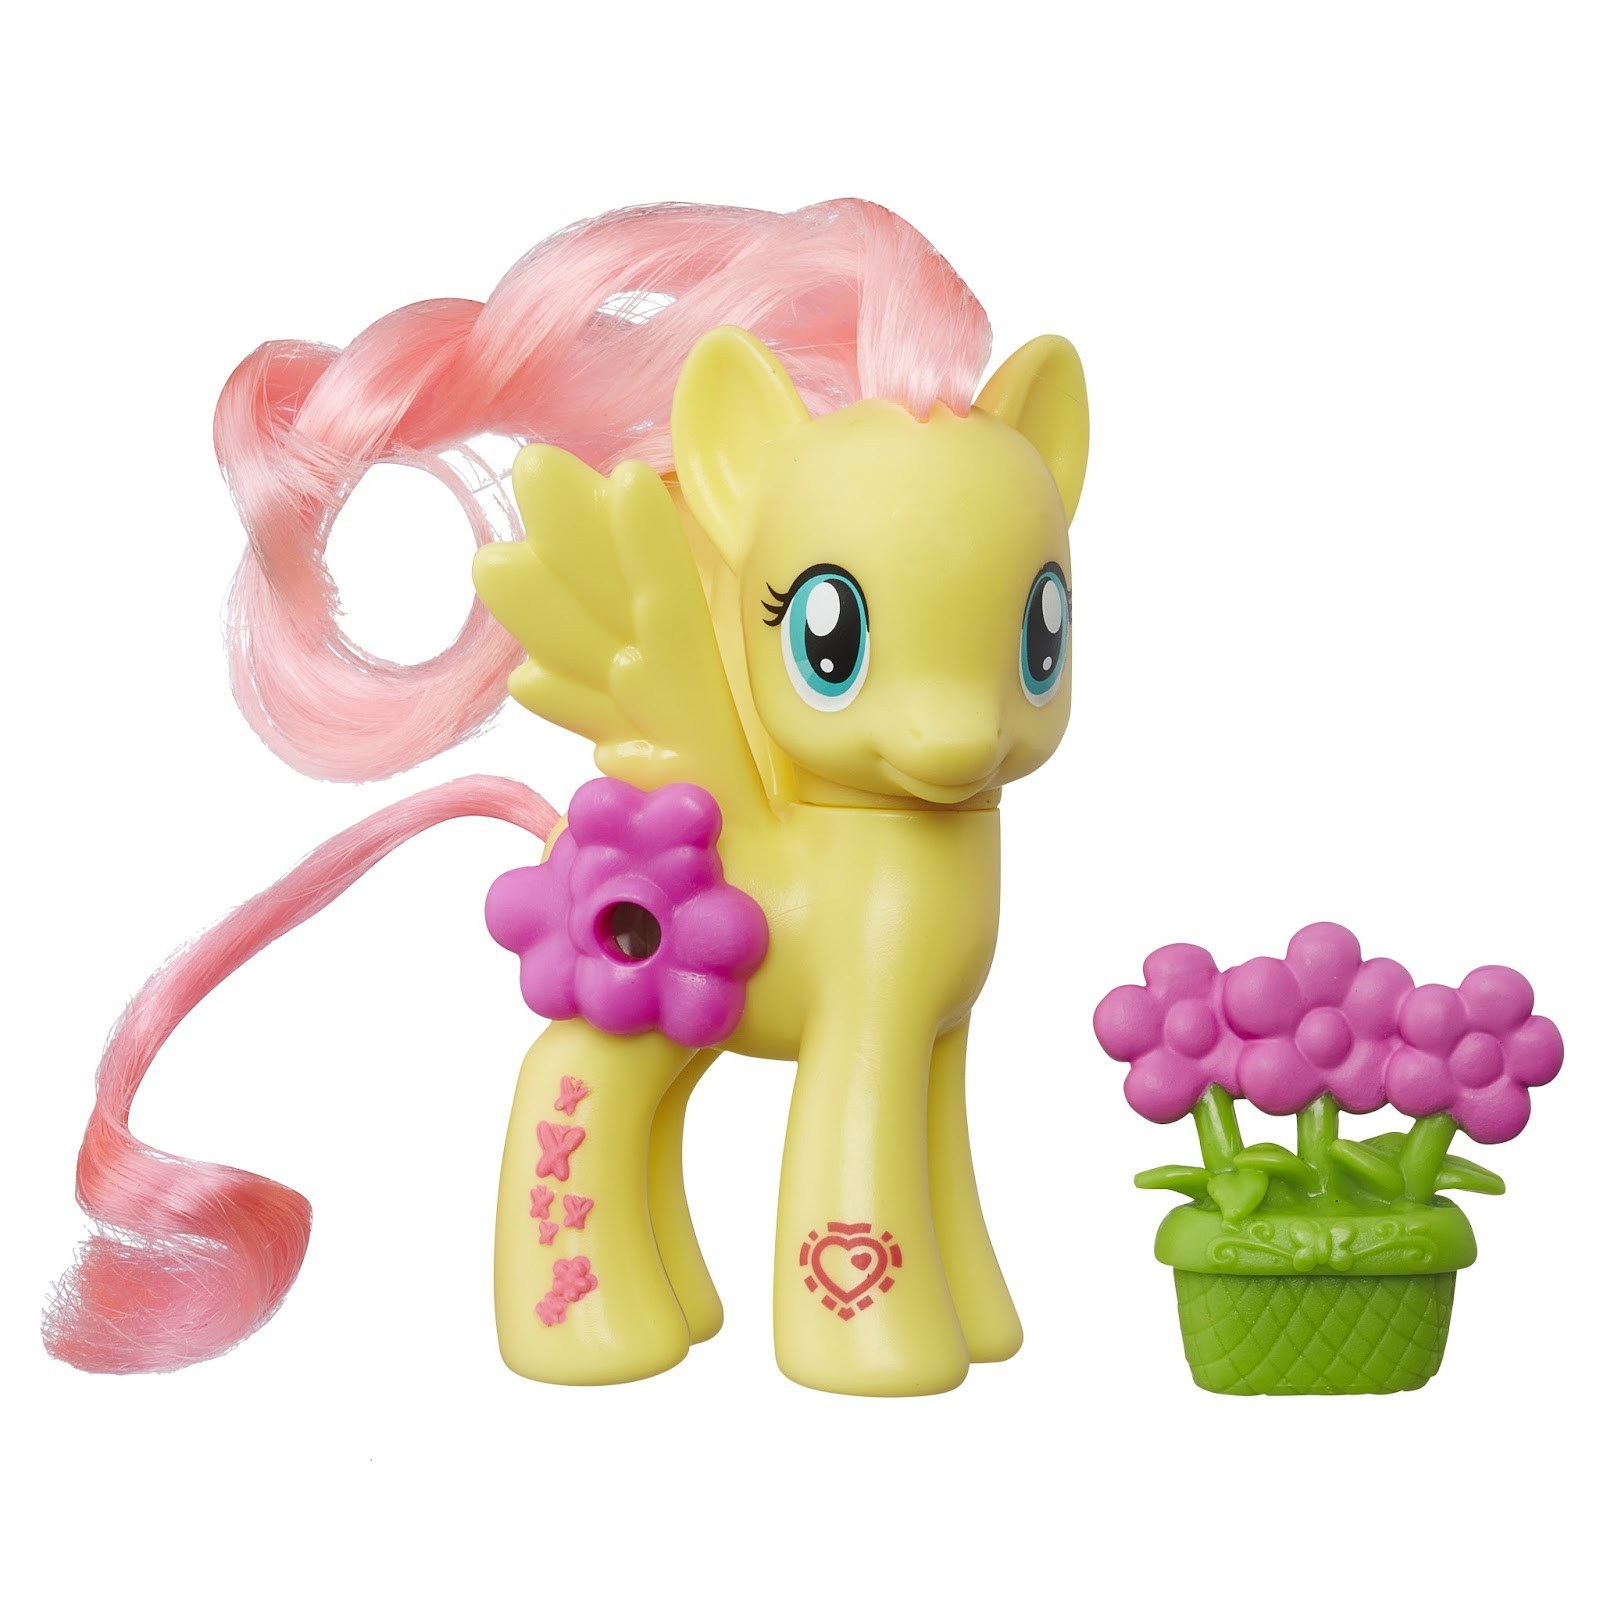 My Little Pony Toy Food : Image explore equestria magical scenes fluttershy toy